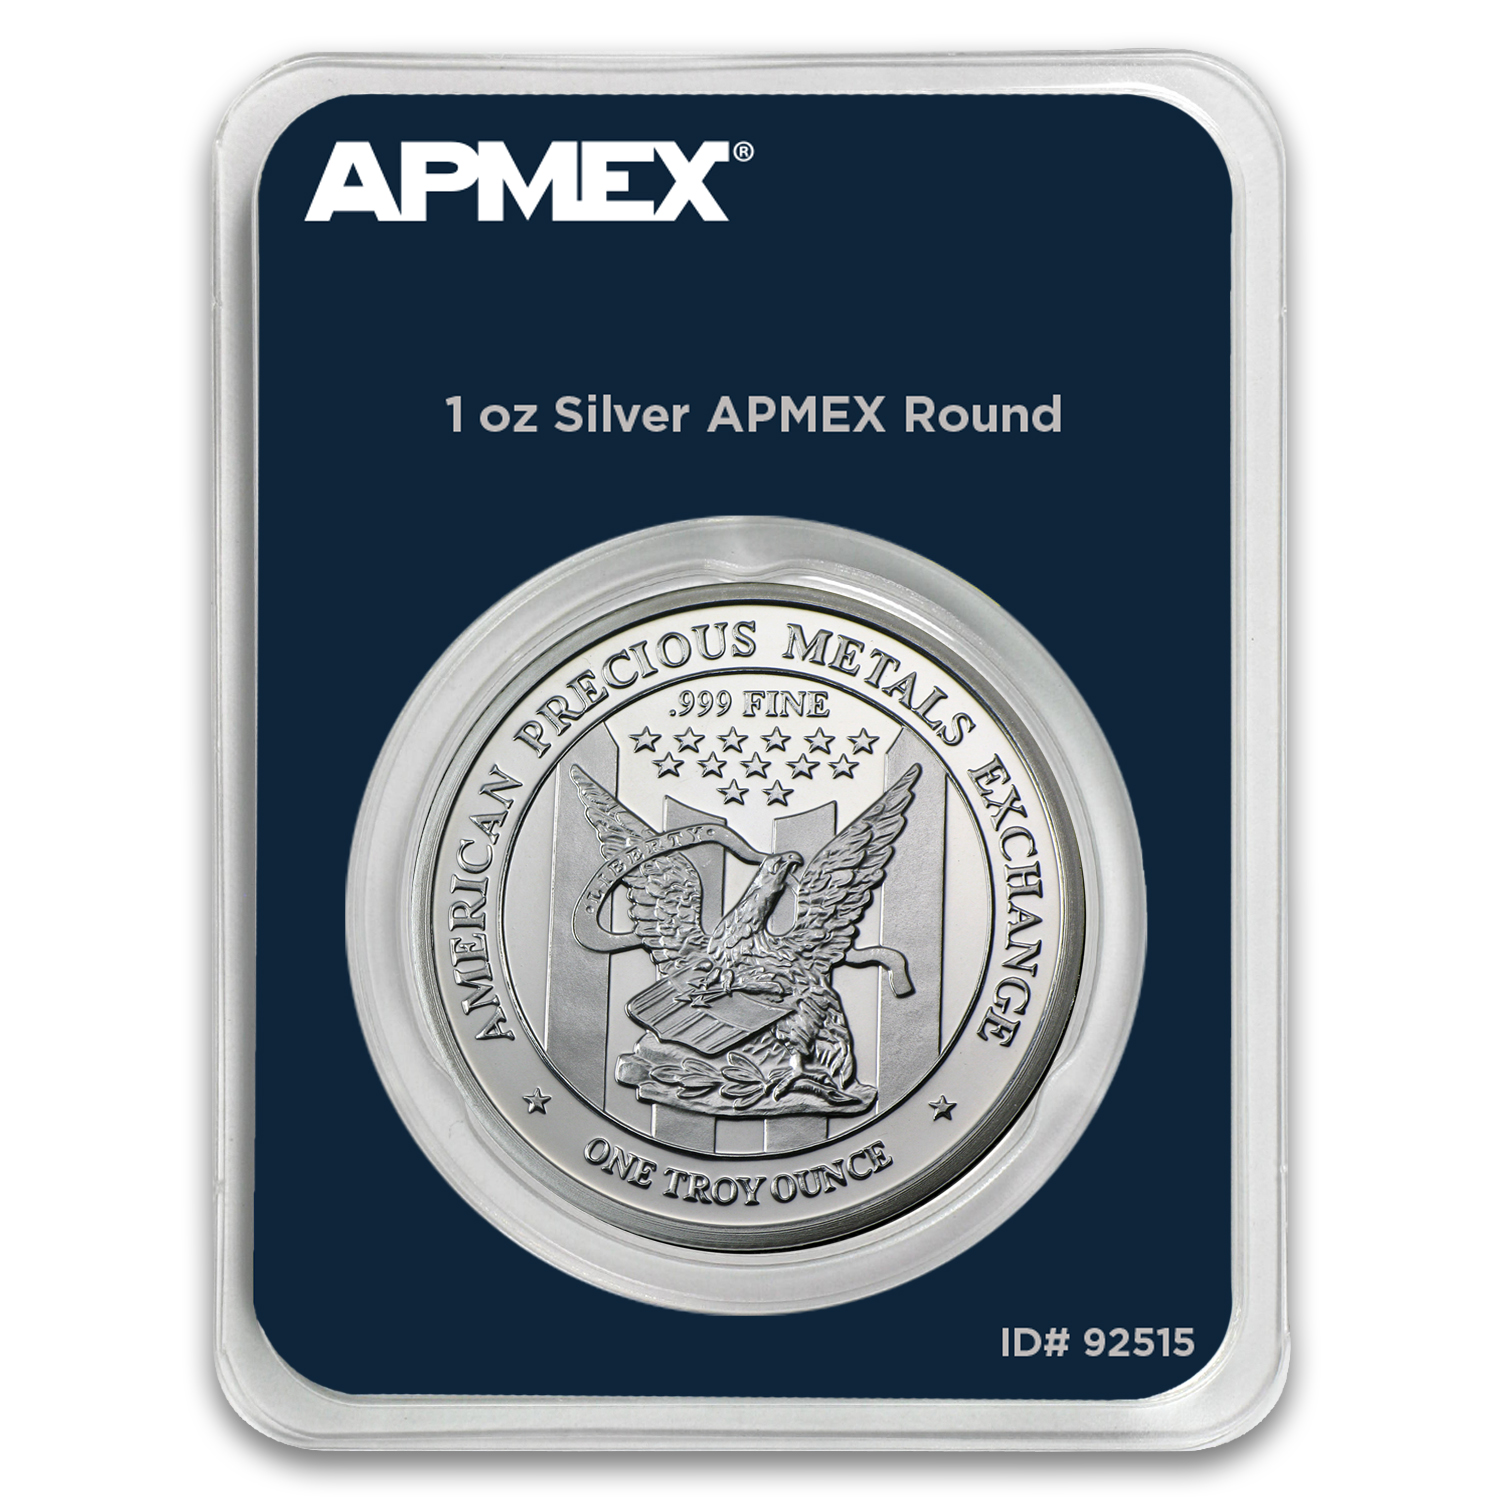 1 Oz Silver Round Apmex In Tep Package 1 Oz Silver